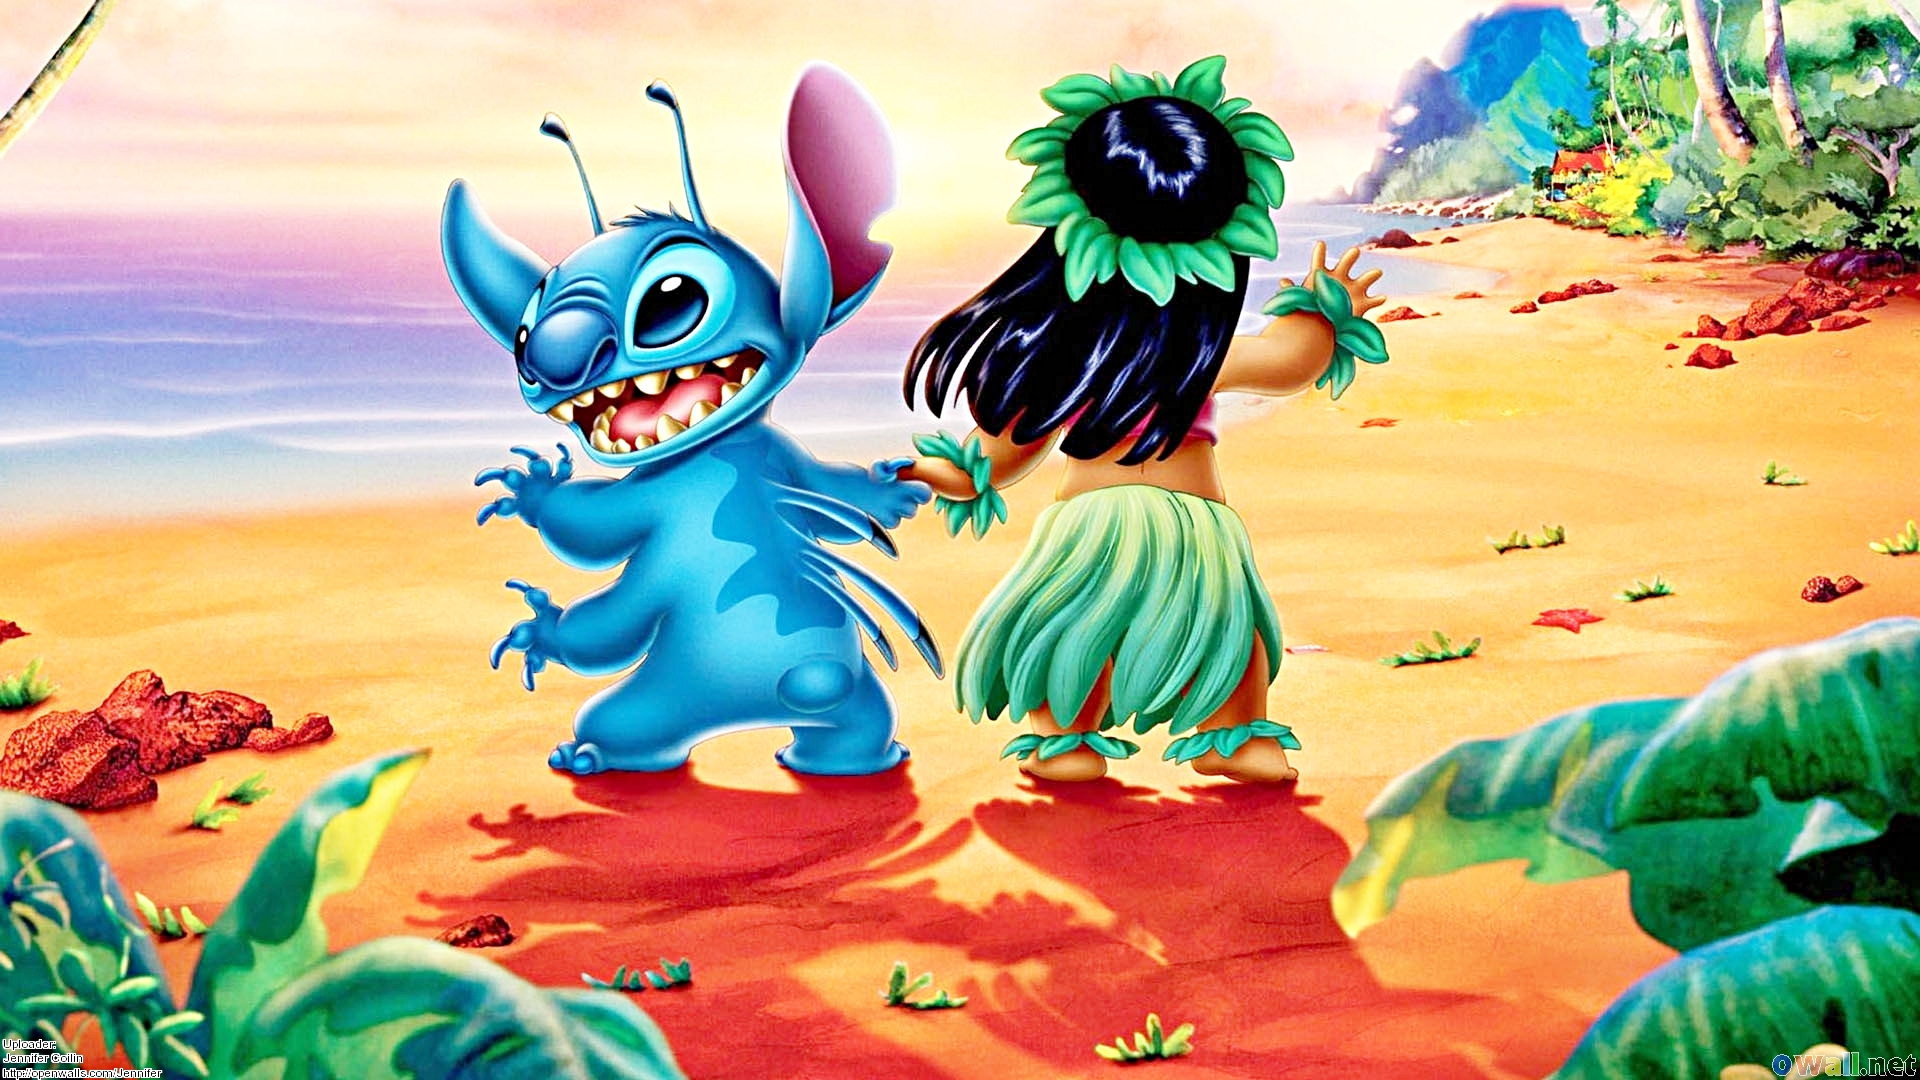 Walt disney wallpapers - Stitch & Lilo Pelekai